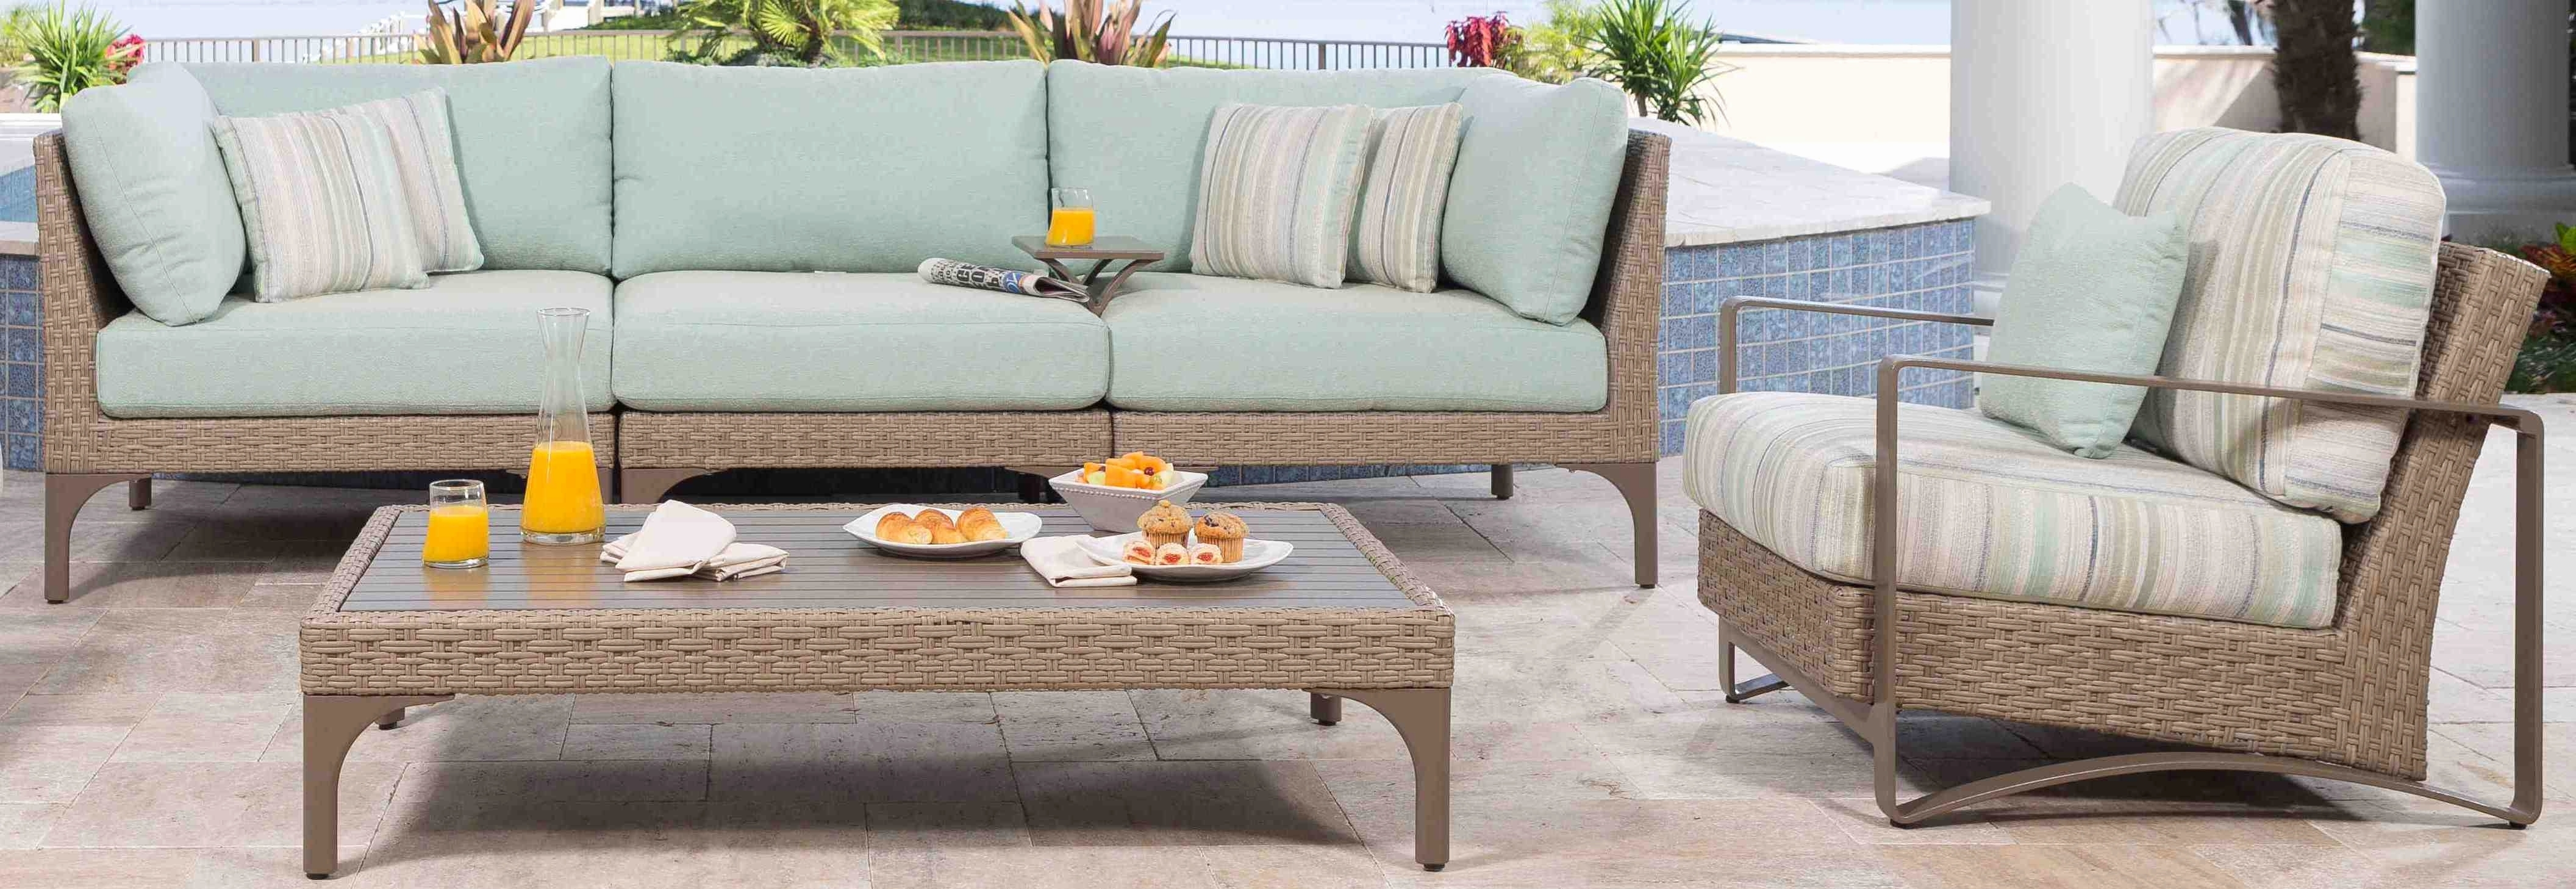 Newest Nfm Patio Conversation Sets In Ebel Patio Furniture. Wayfair Outdoor Patio Furniture Chic And (Gallery 12 of 20)